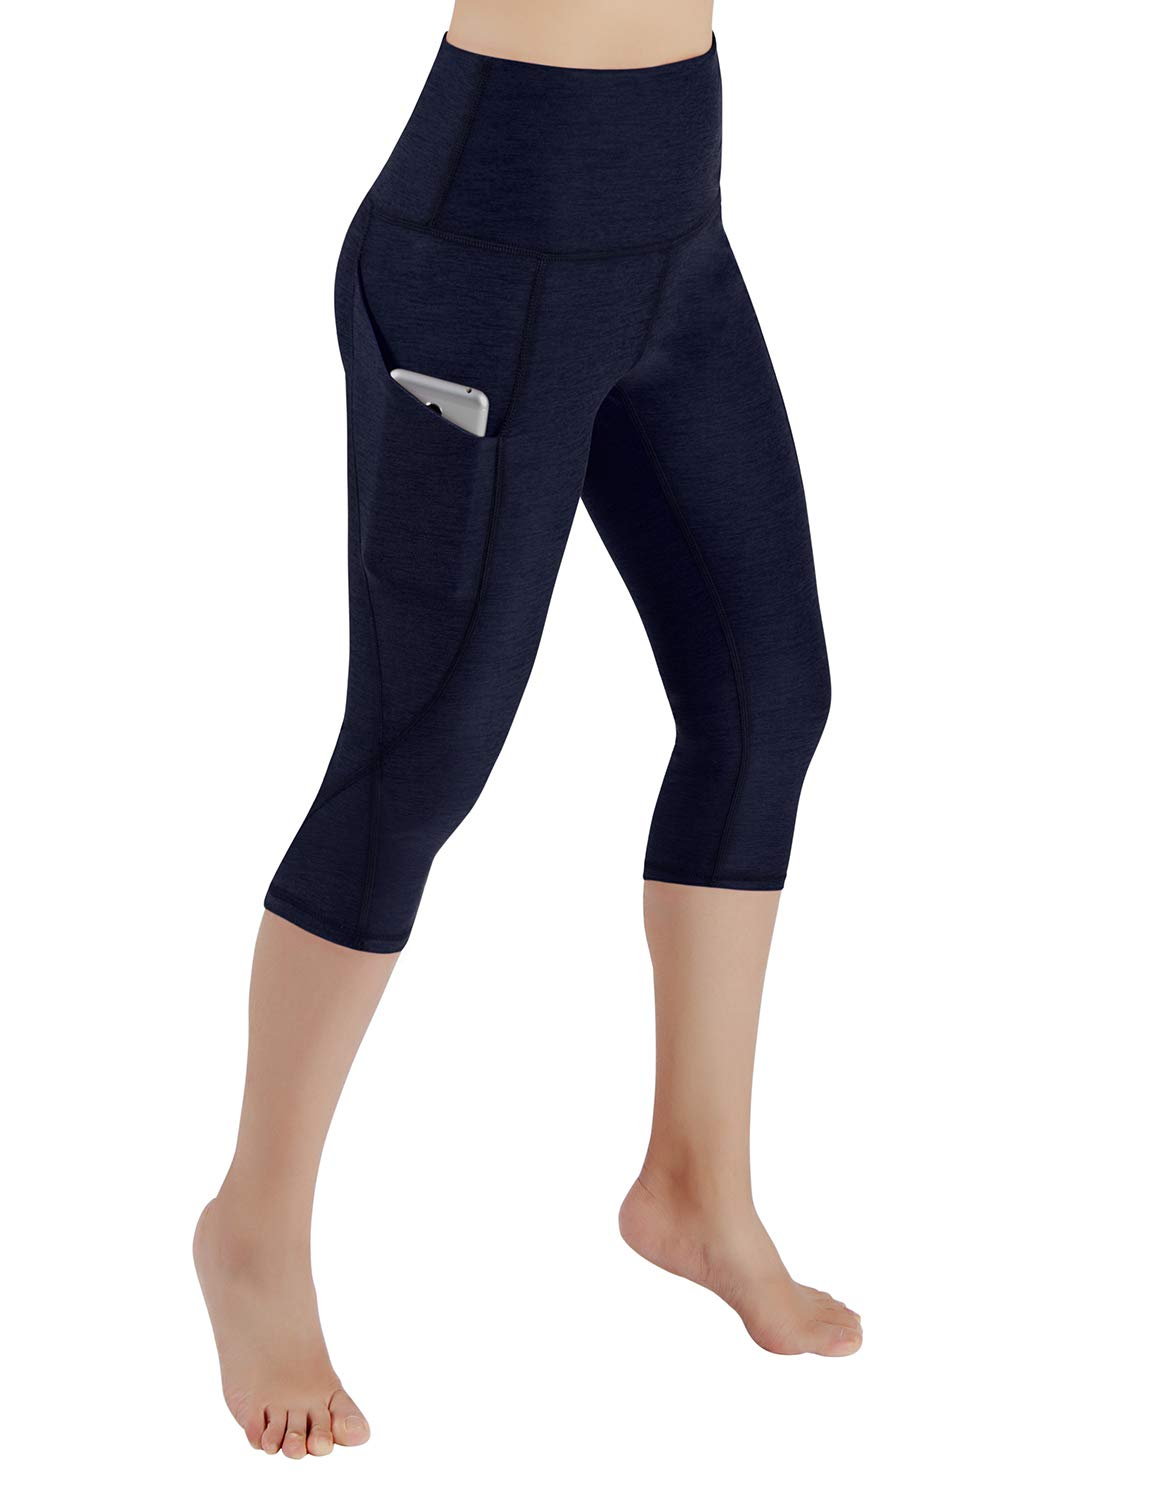 ODODOS High Waist Out Pocket Yoga Capris Pants Tummy Control Workout Running 4 Way Stretch Yoga Leggings,Navy,X-Small